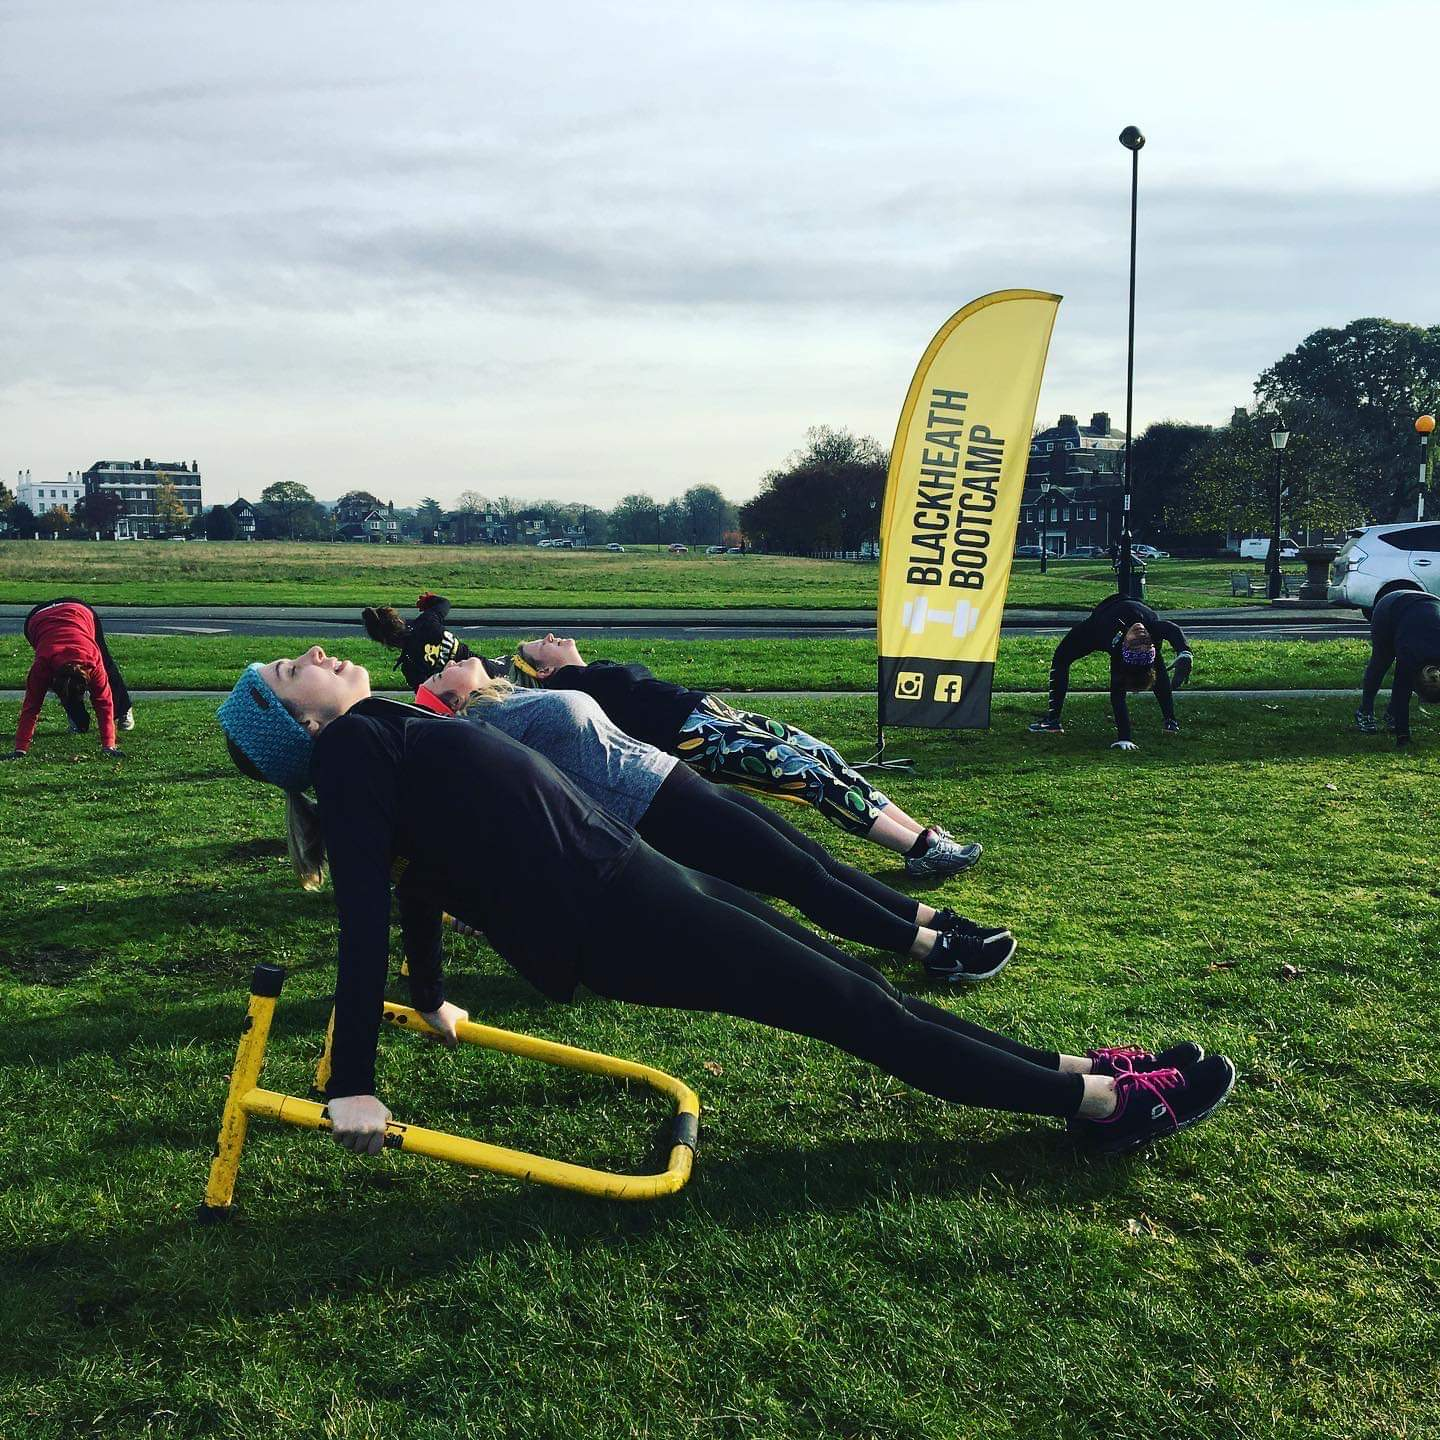 Blackheath Bootcamp 7